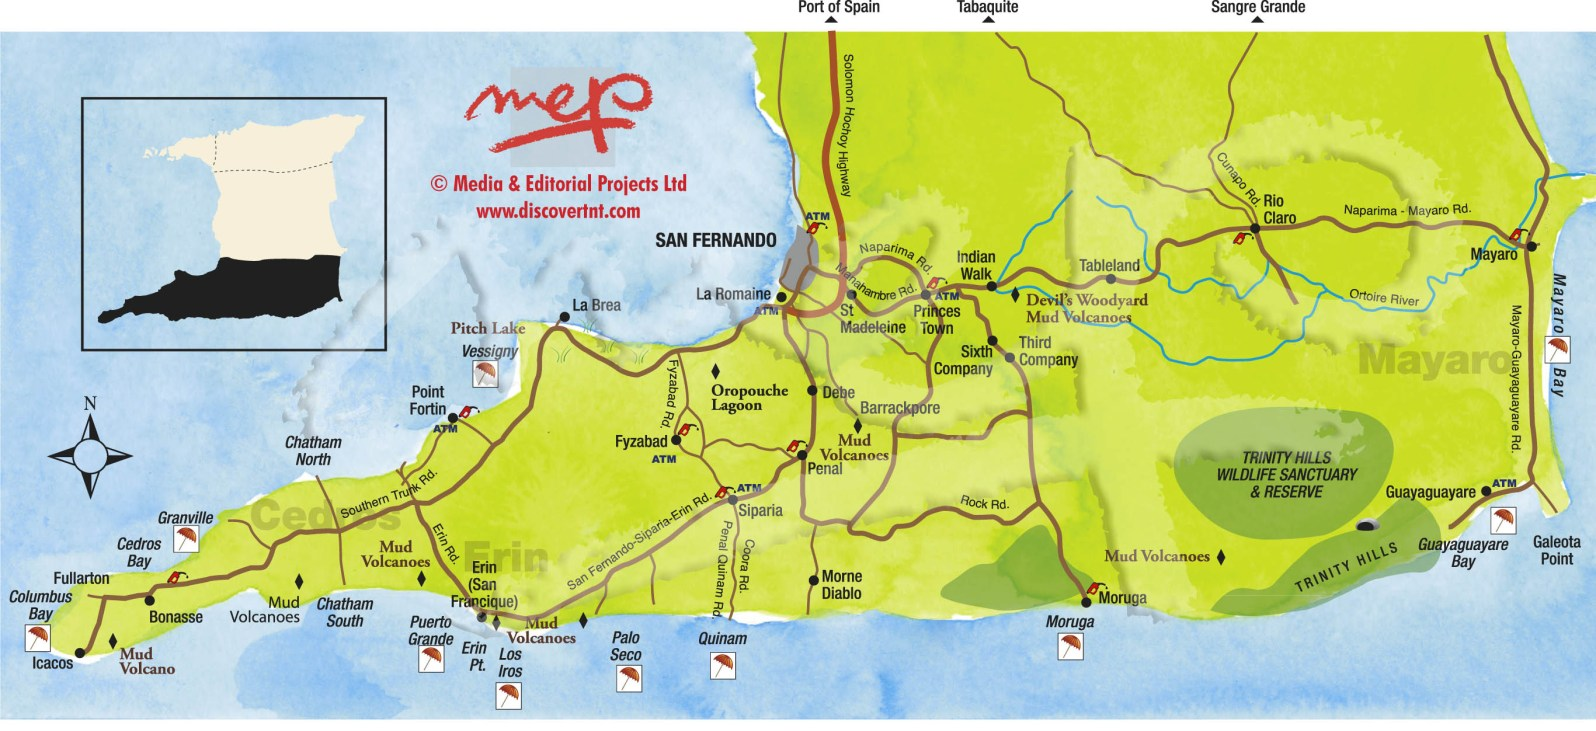 South Trinidad Map. Copyright MEP Publishers 2013